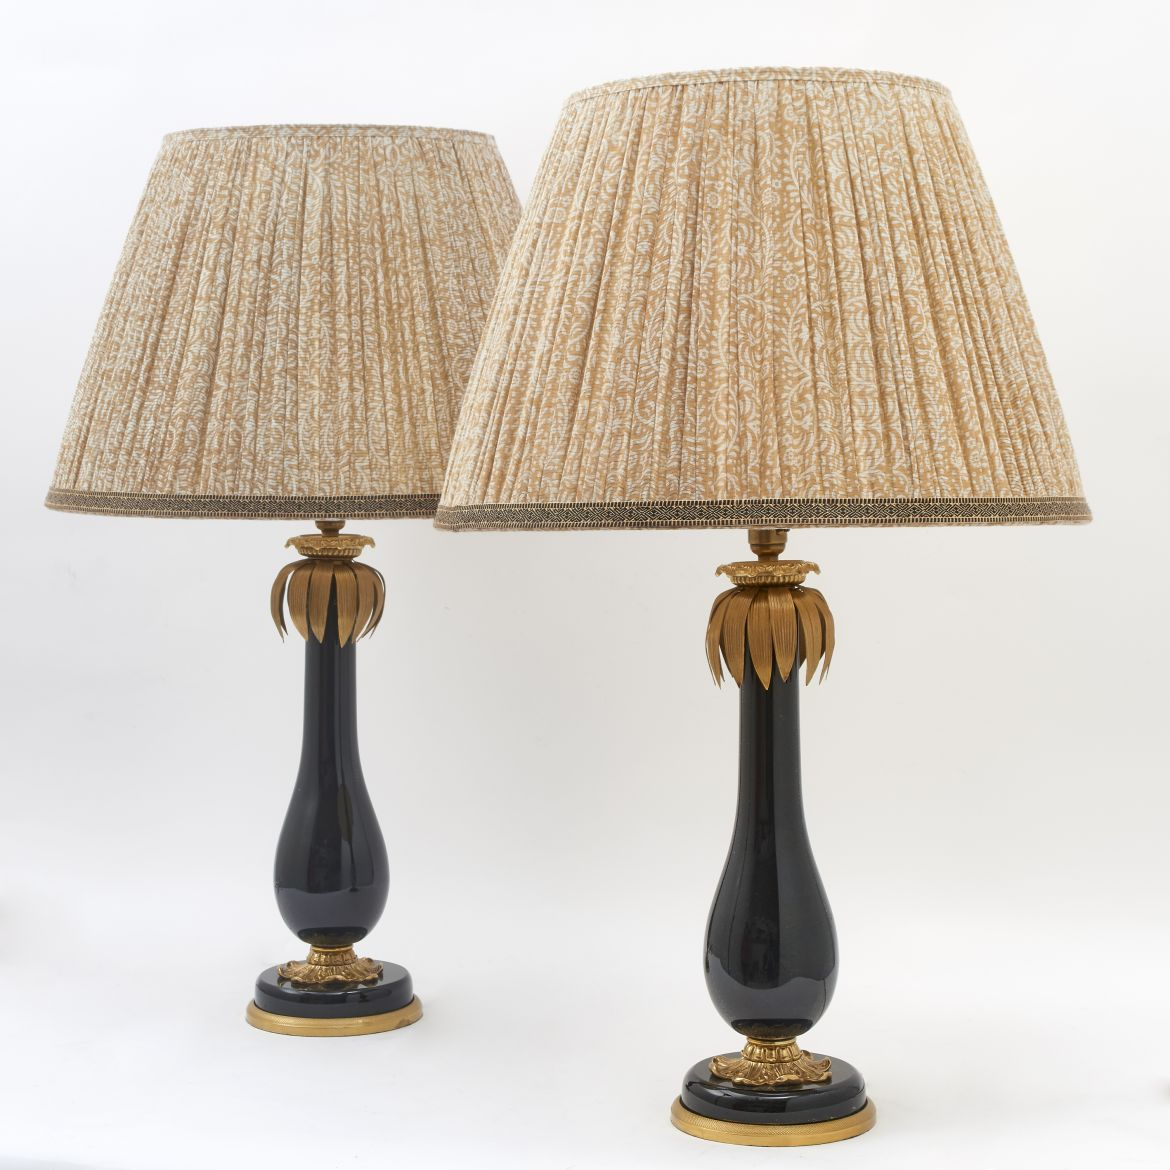 Dark Blue glass palm Lamps